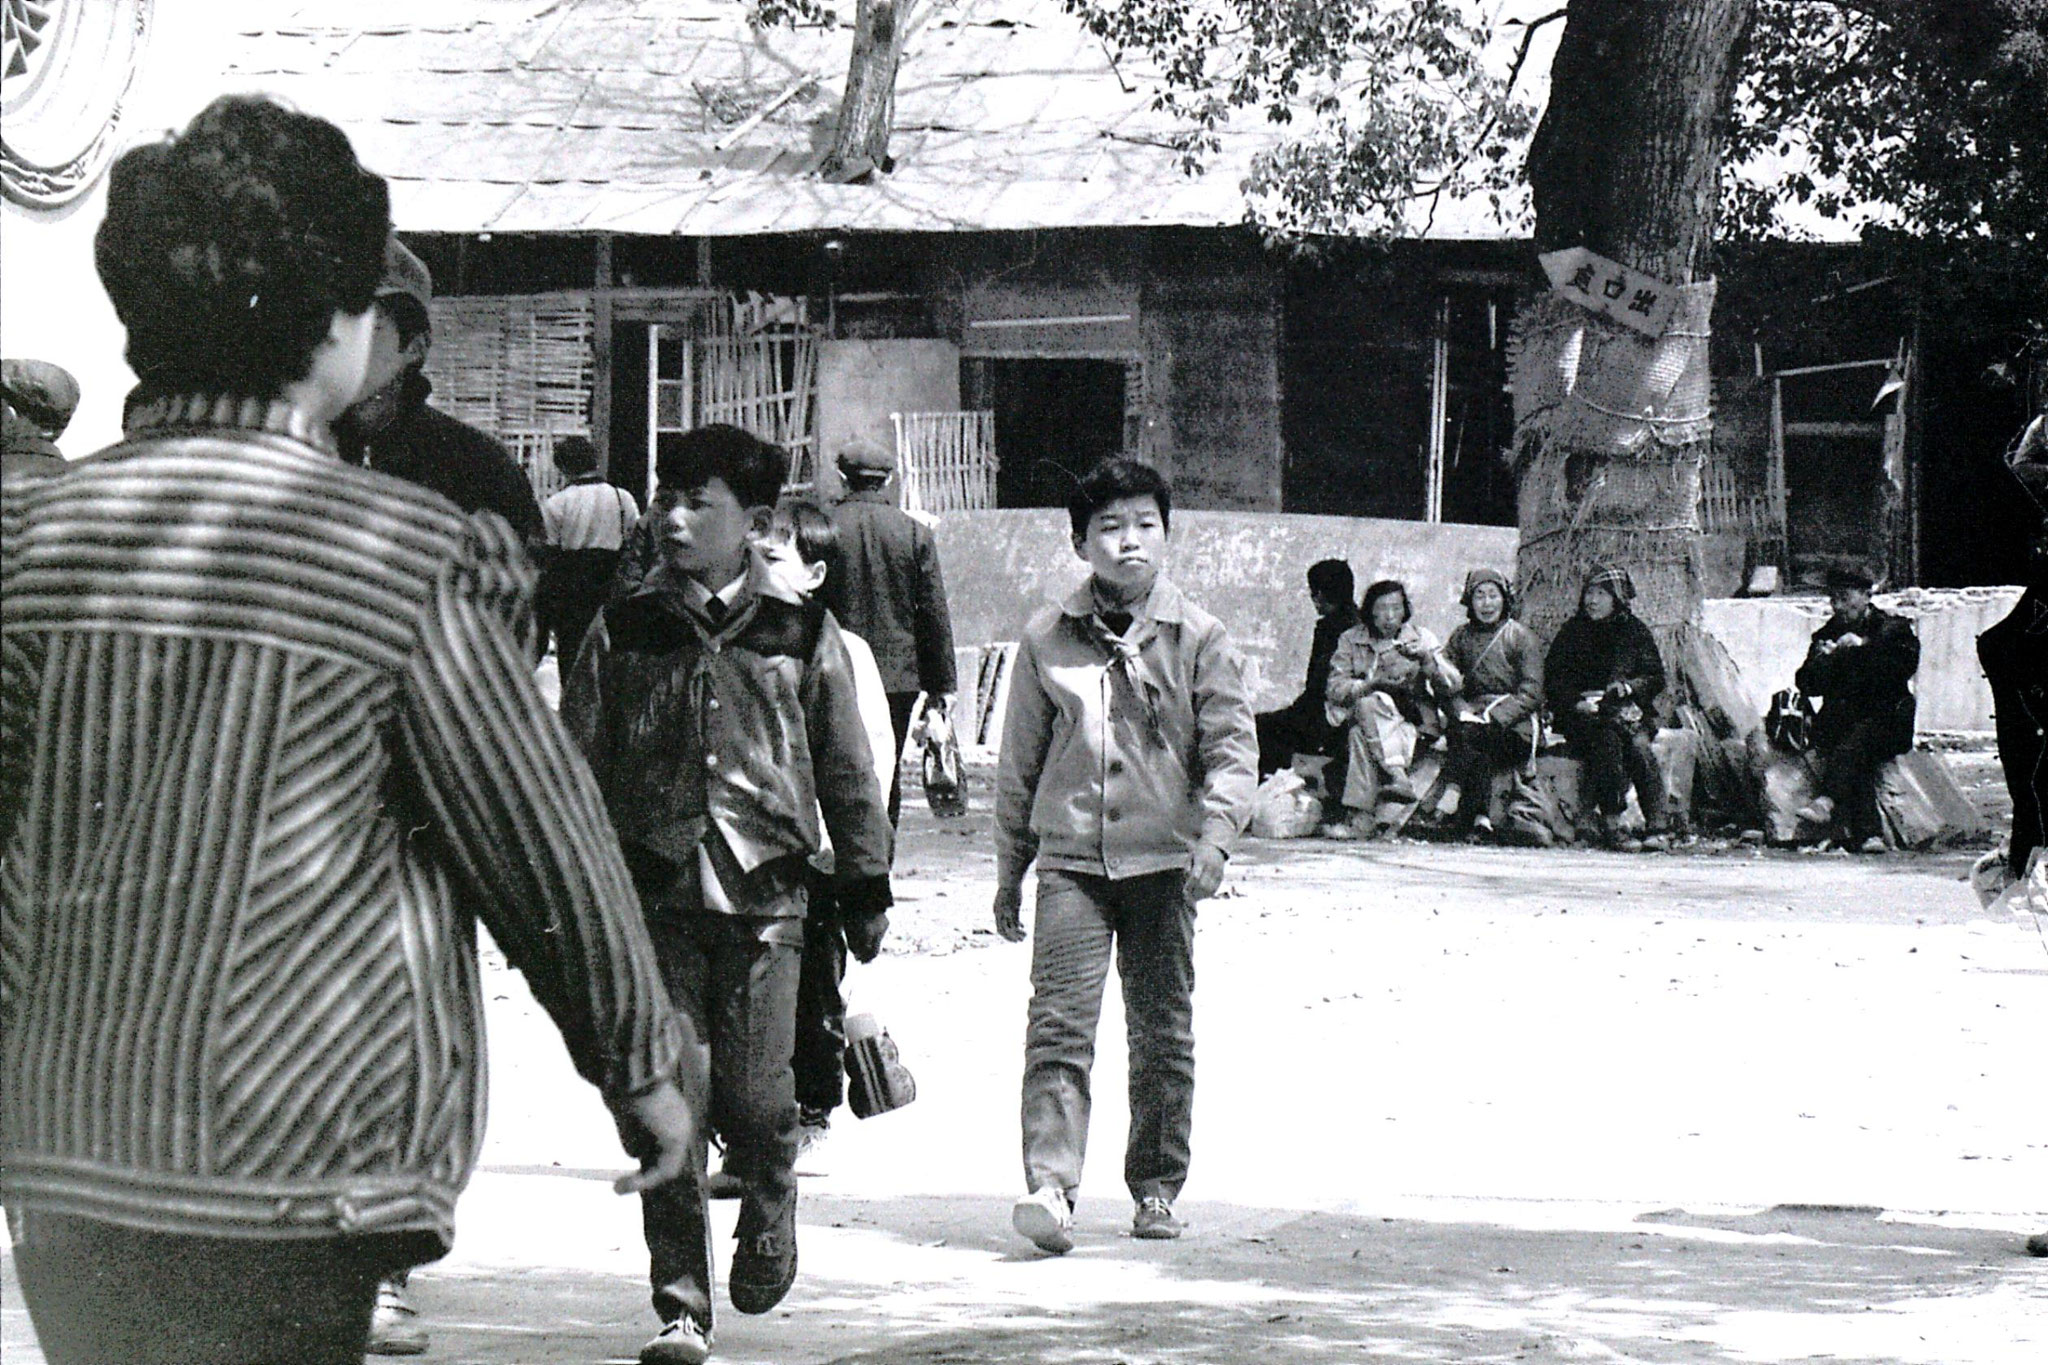 27/3/1989: 13: Lingu Temple school boys with red scarves